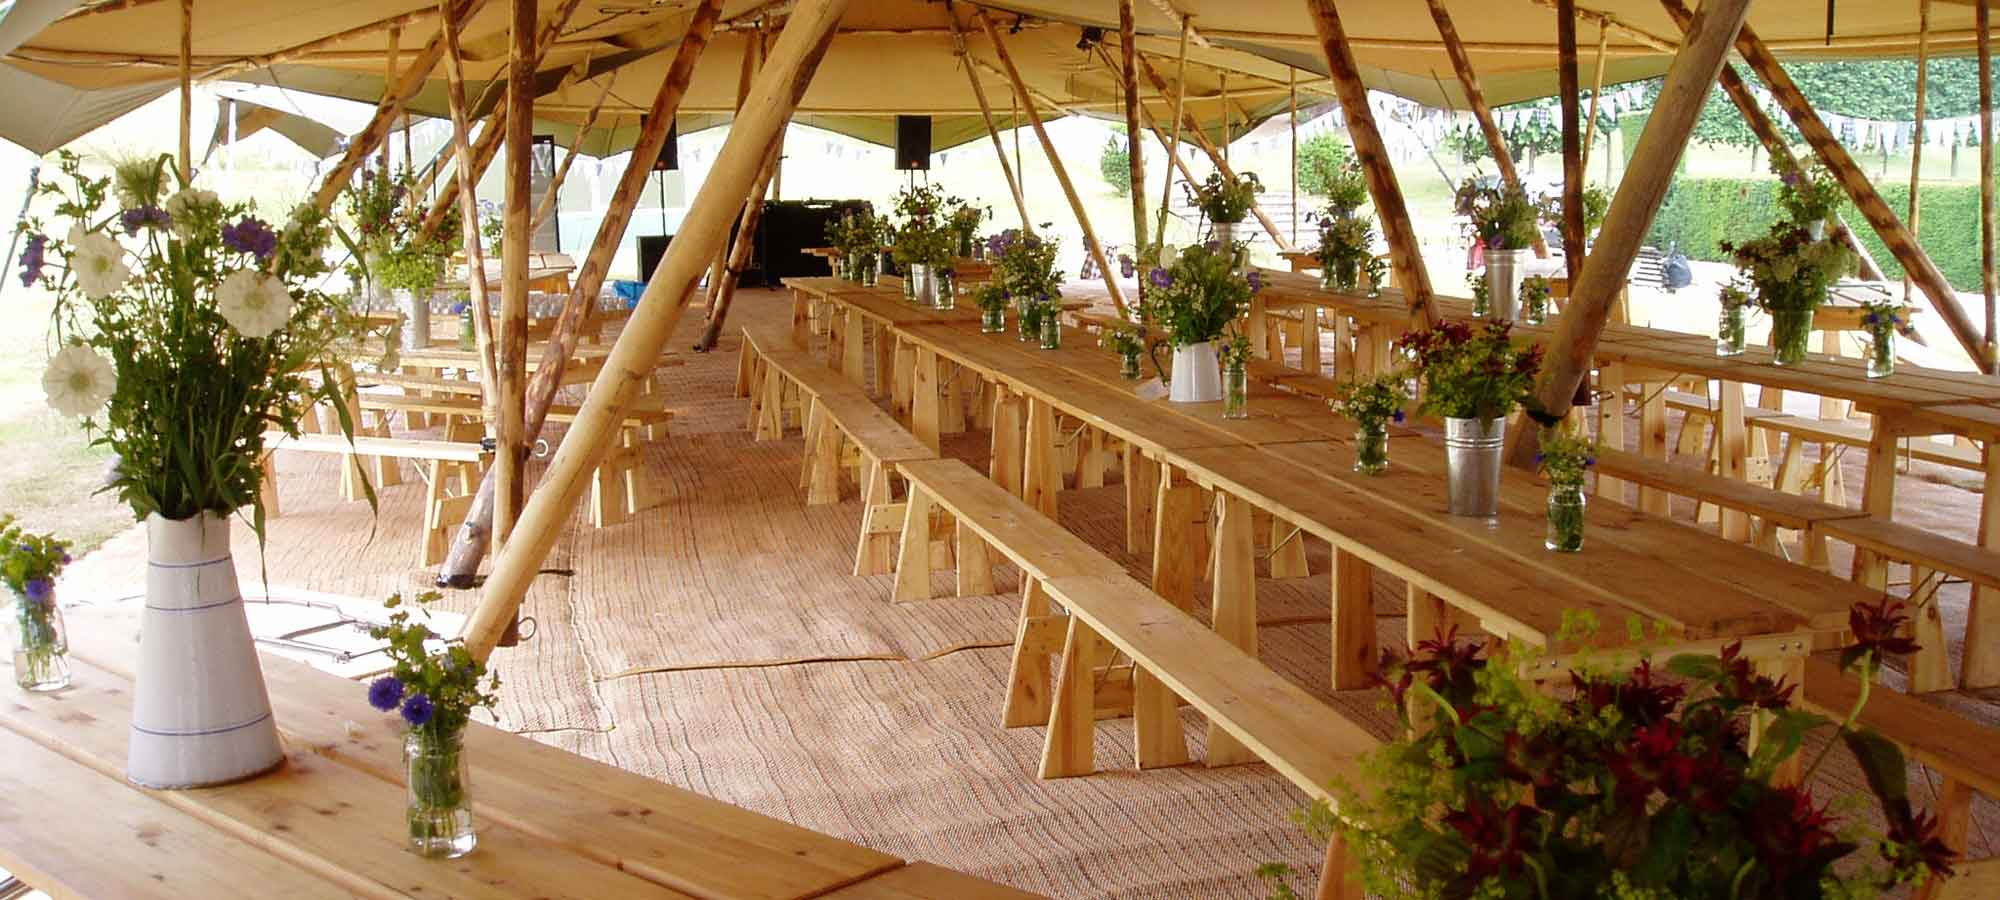 Tentipi tables and benches - purchase event tipi